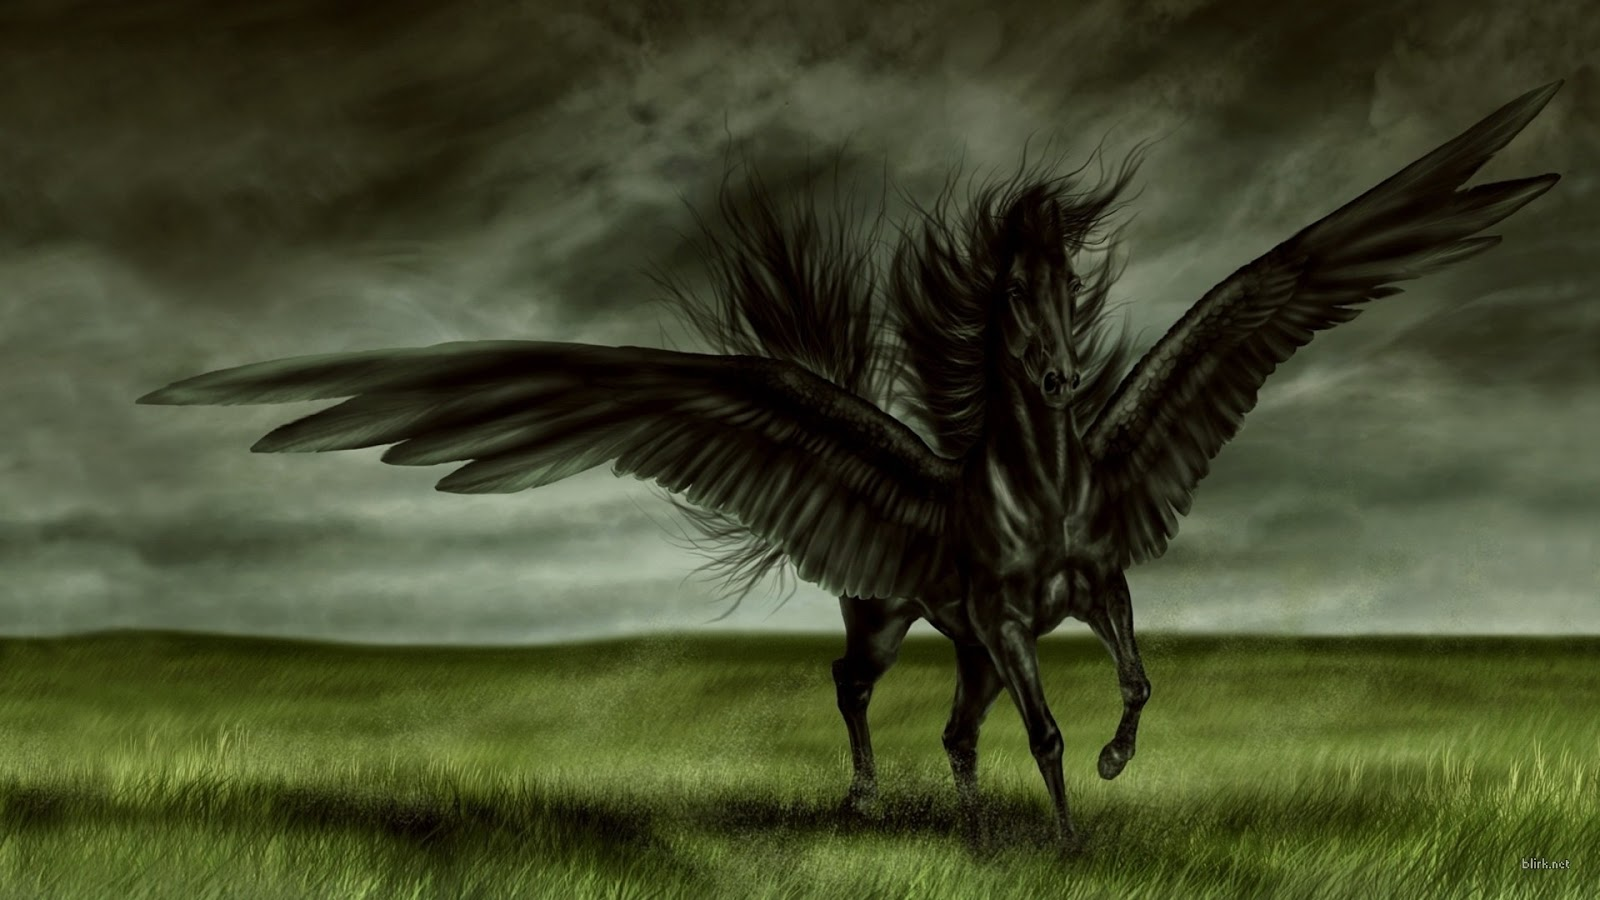 All Wallpapers Black Horse New Best Hd Wallpapers Black Horse 3d Wallpaper Hd 1600x900 Wallpaper Teahub Io